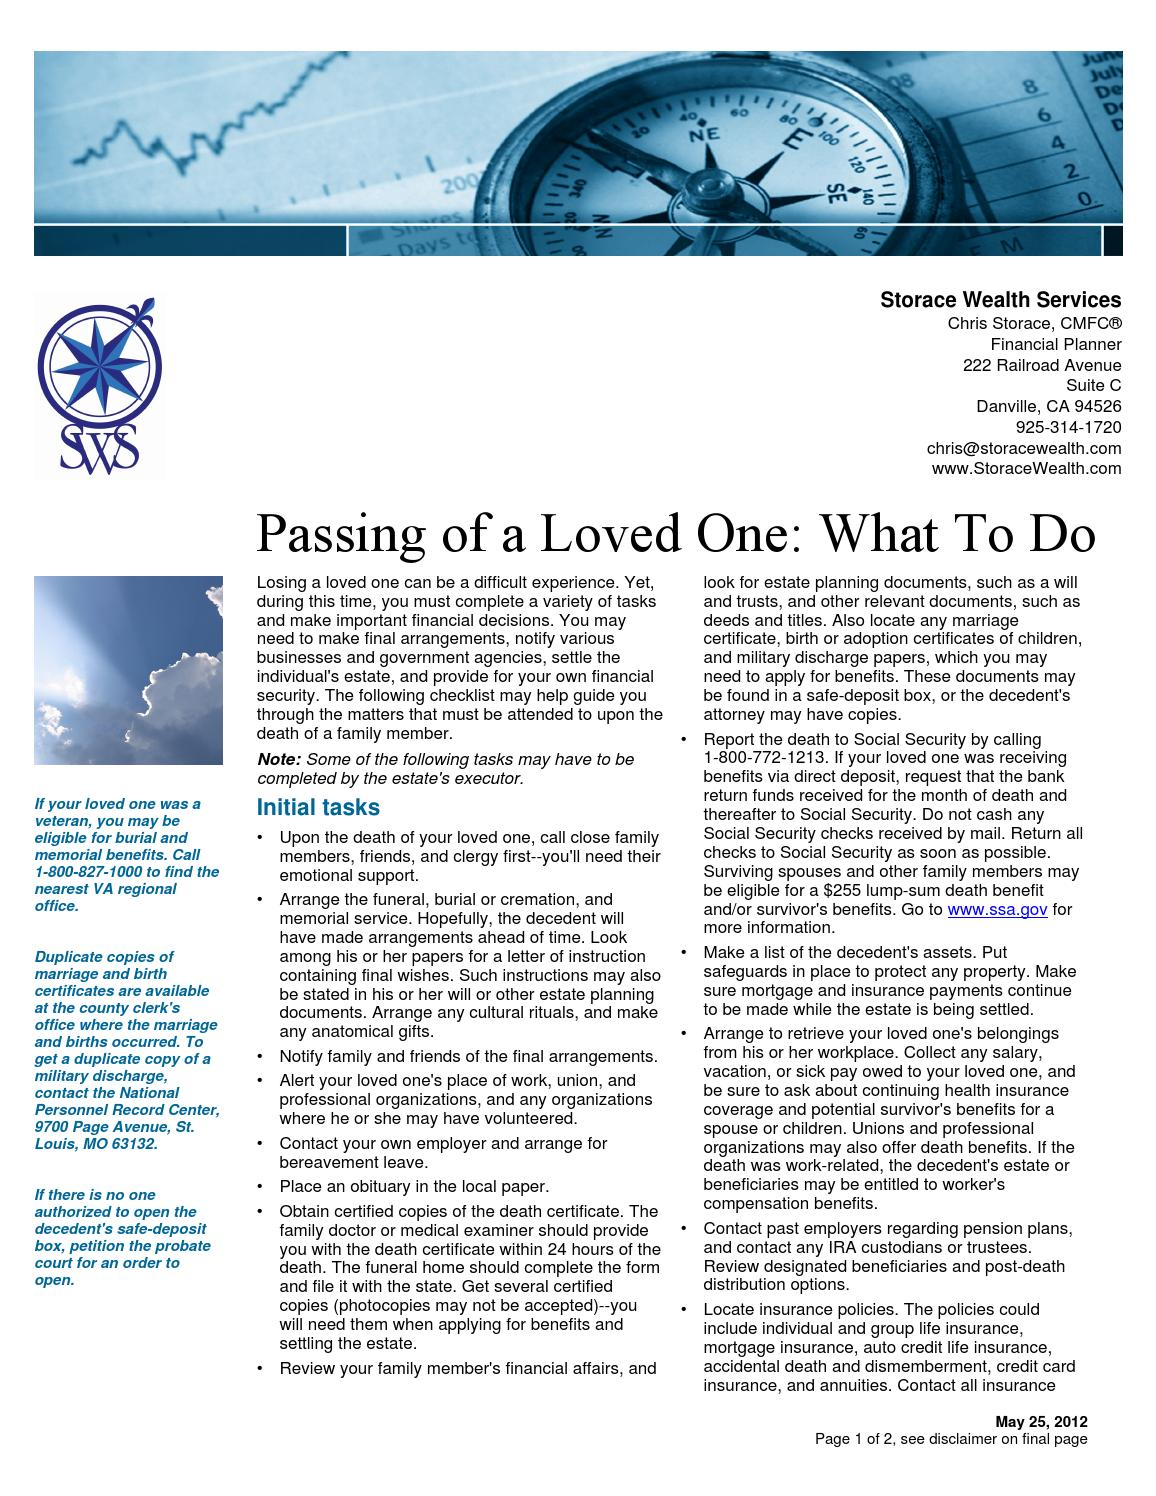 Passing Of A Loved One What To Do By Chris Storace Issuu